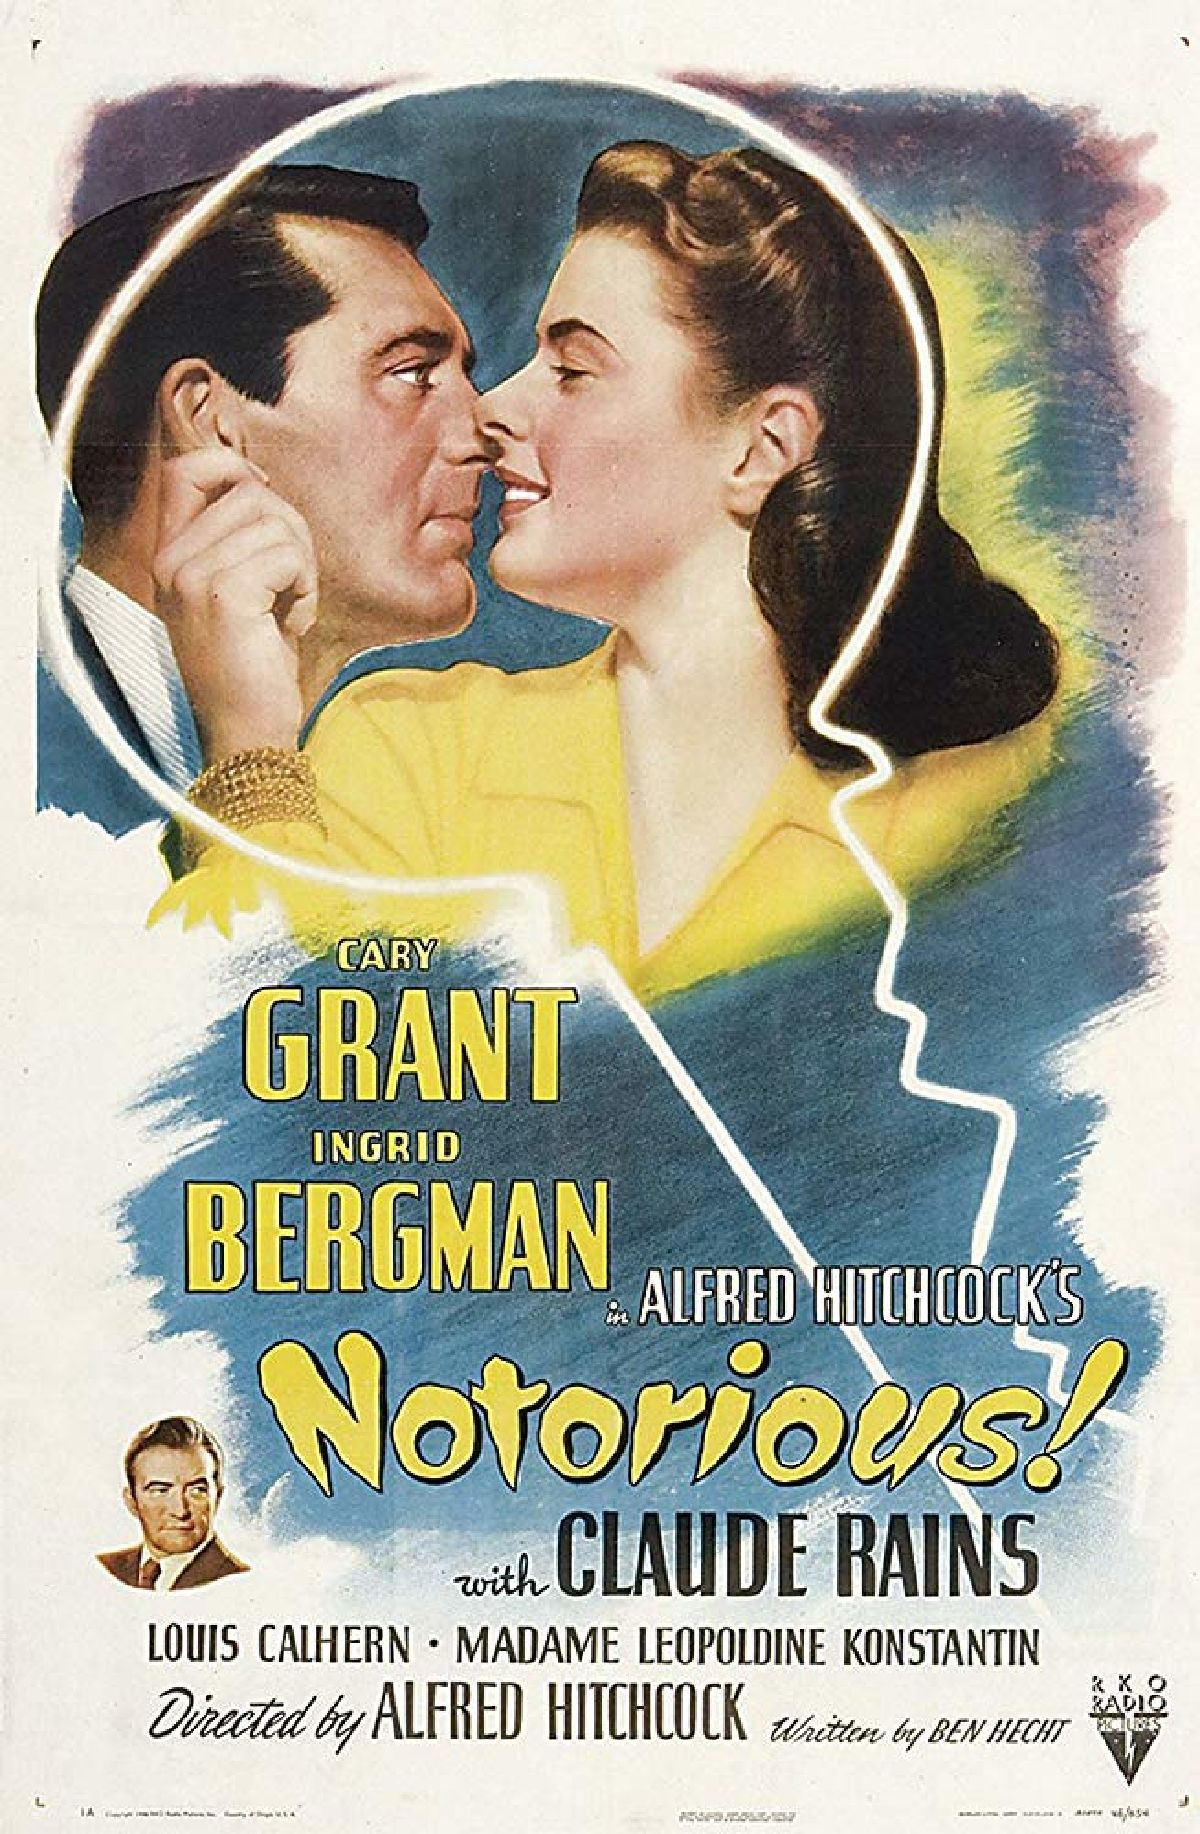 'Notorious' movie poster